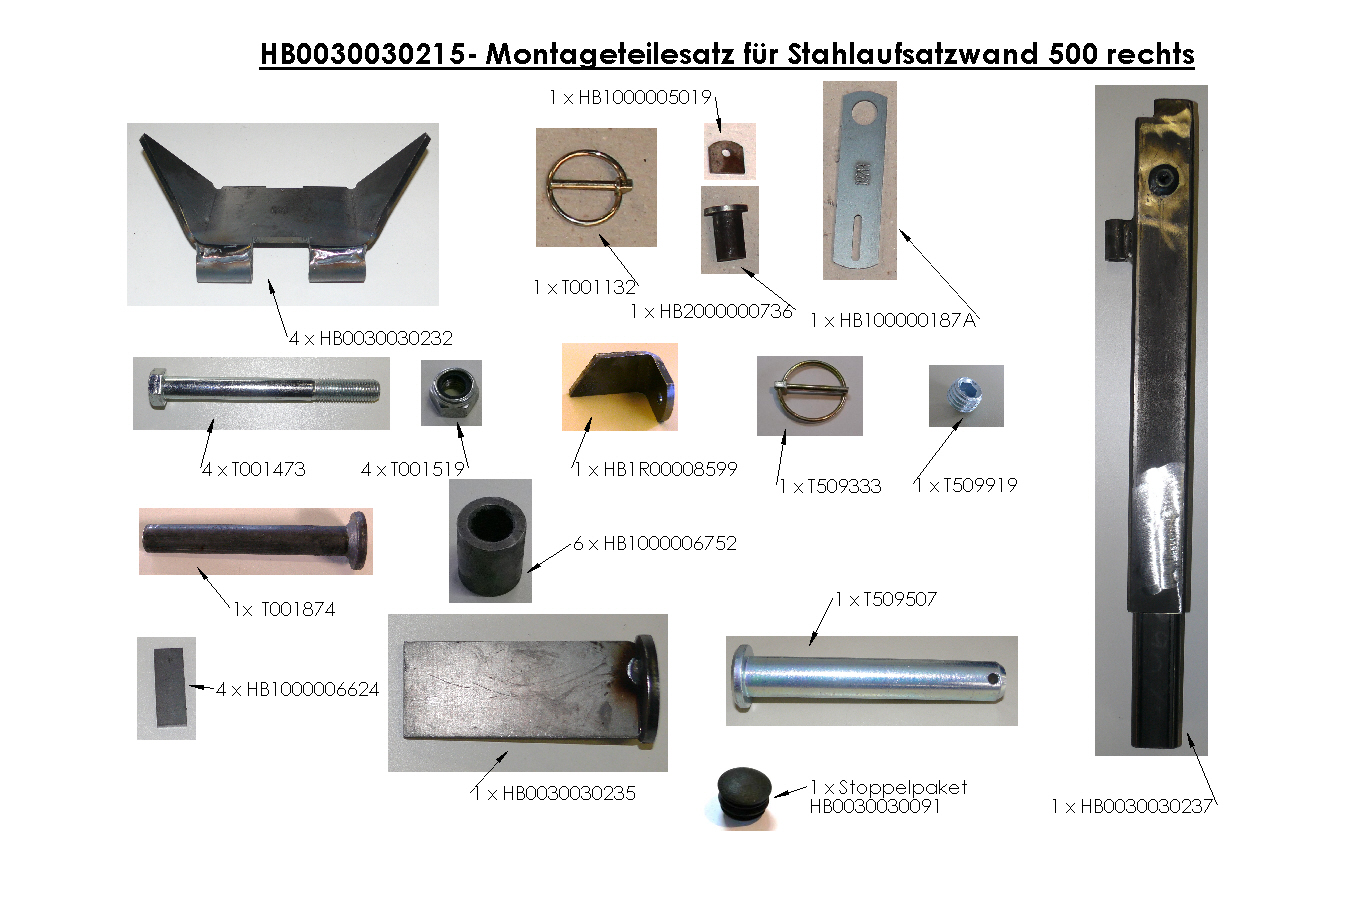 Brantner Kipper und Anhänger - assembly kit for steel attachment wall 500 right